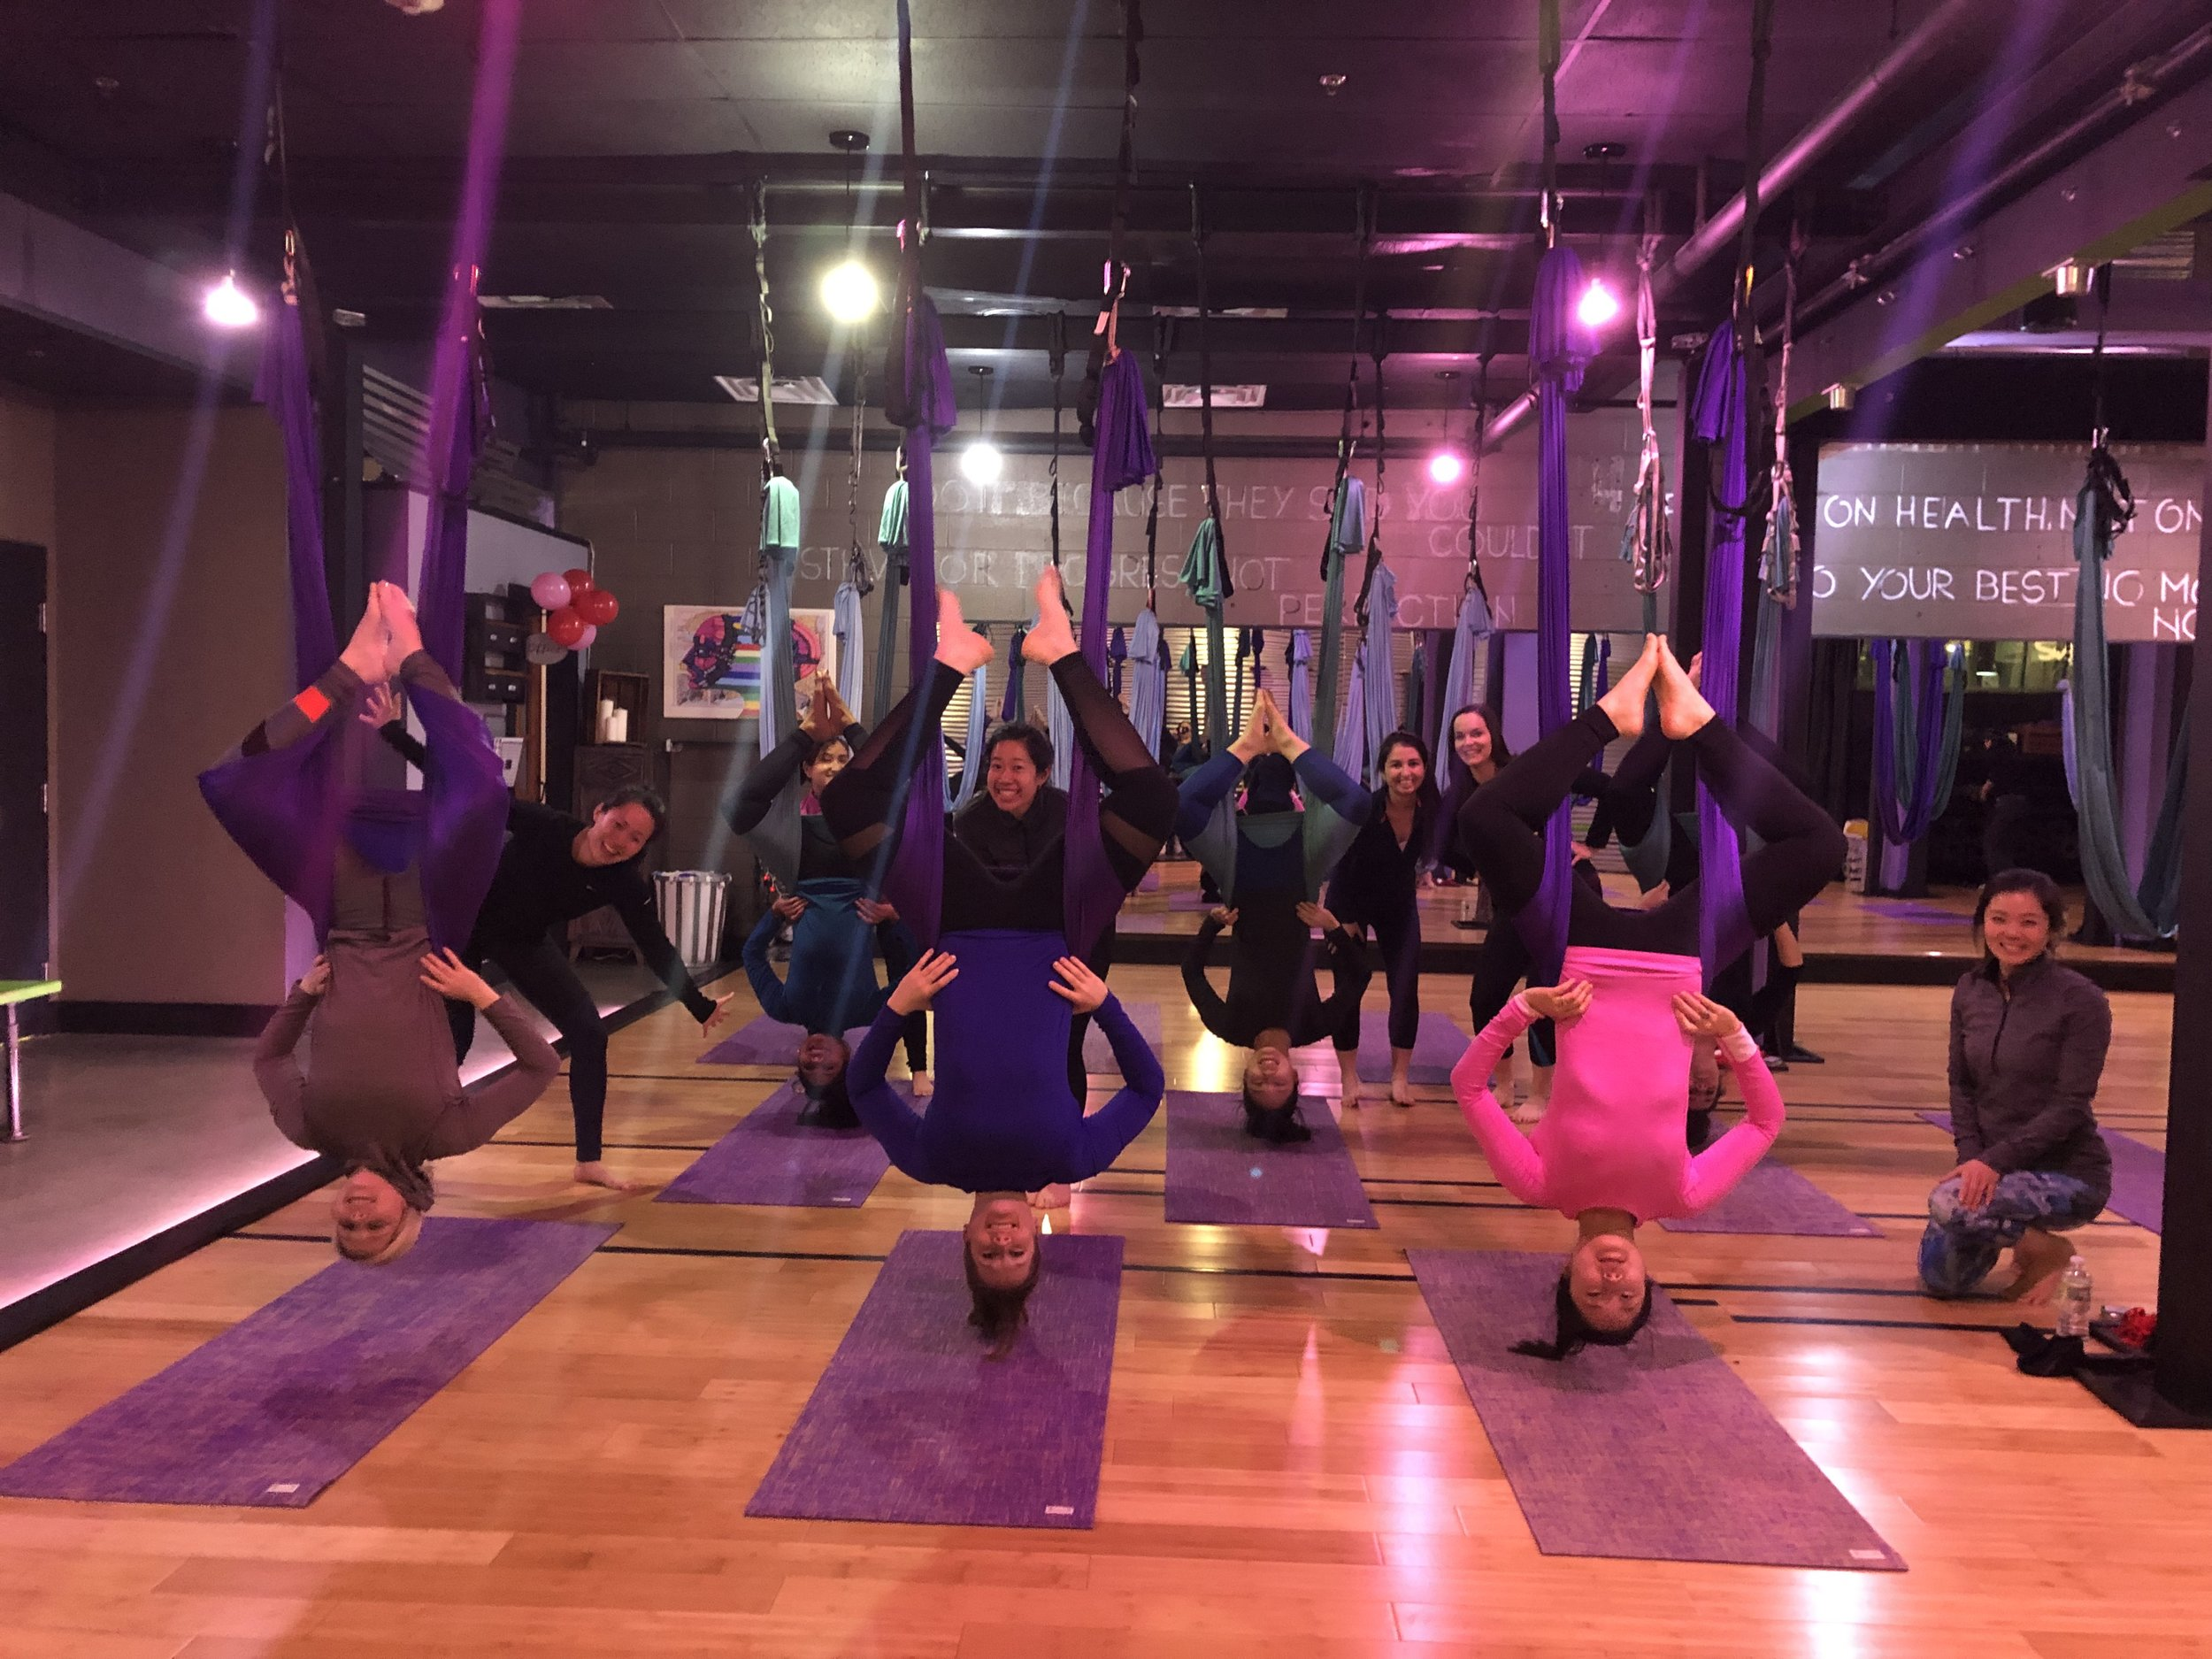 Galentine's Day Aerial Yoga - February 14, 2019